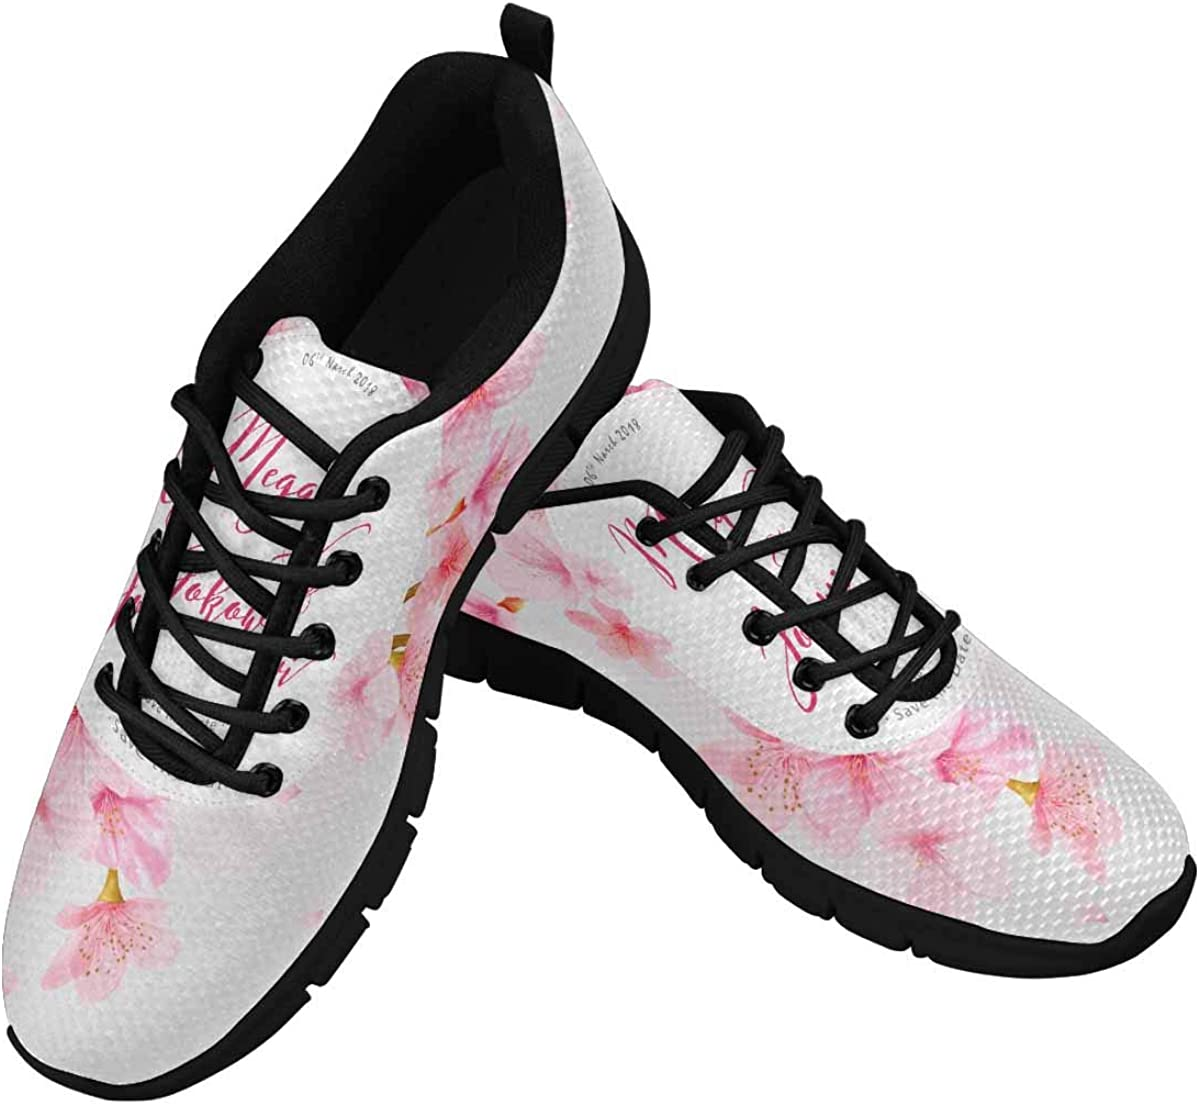 InterestPrint Watercolor Floral Cherry Blossom Women's Running Shoes Mesh Breathable Sports Casual Shoes